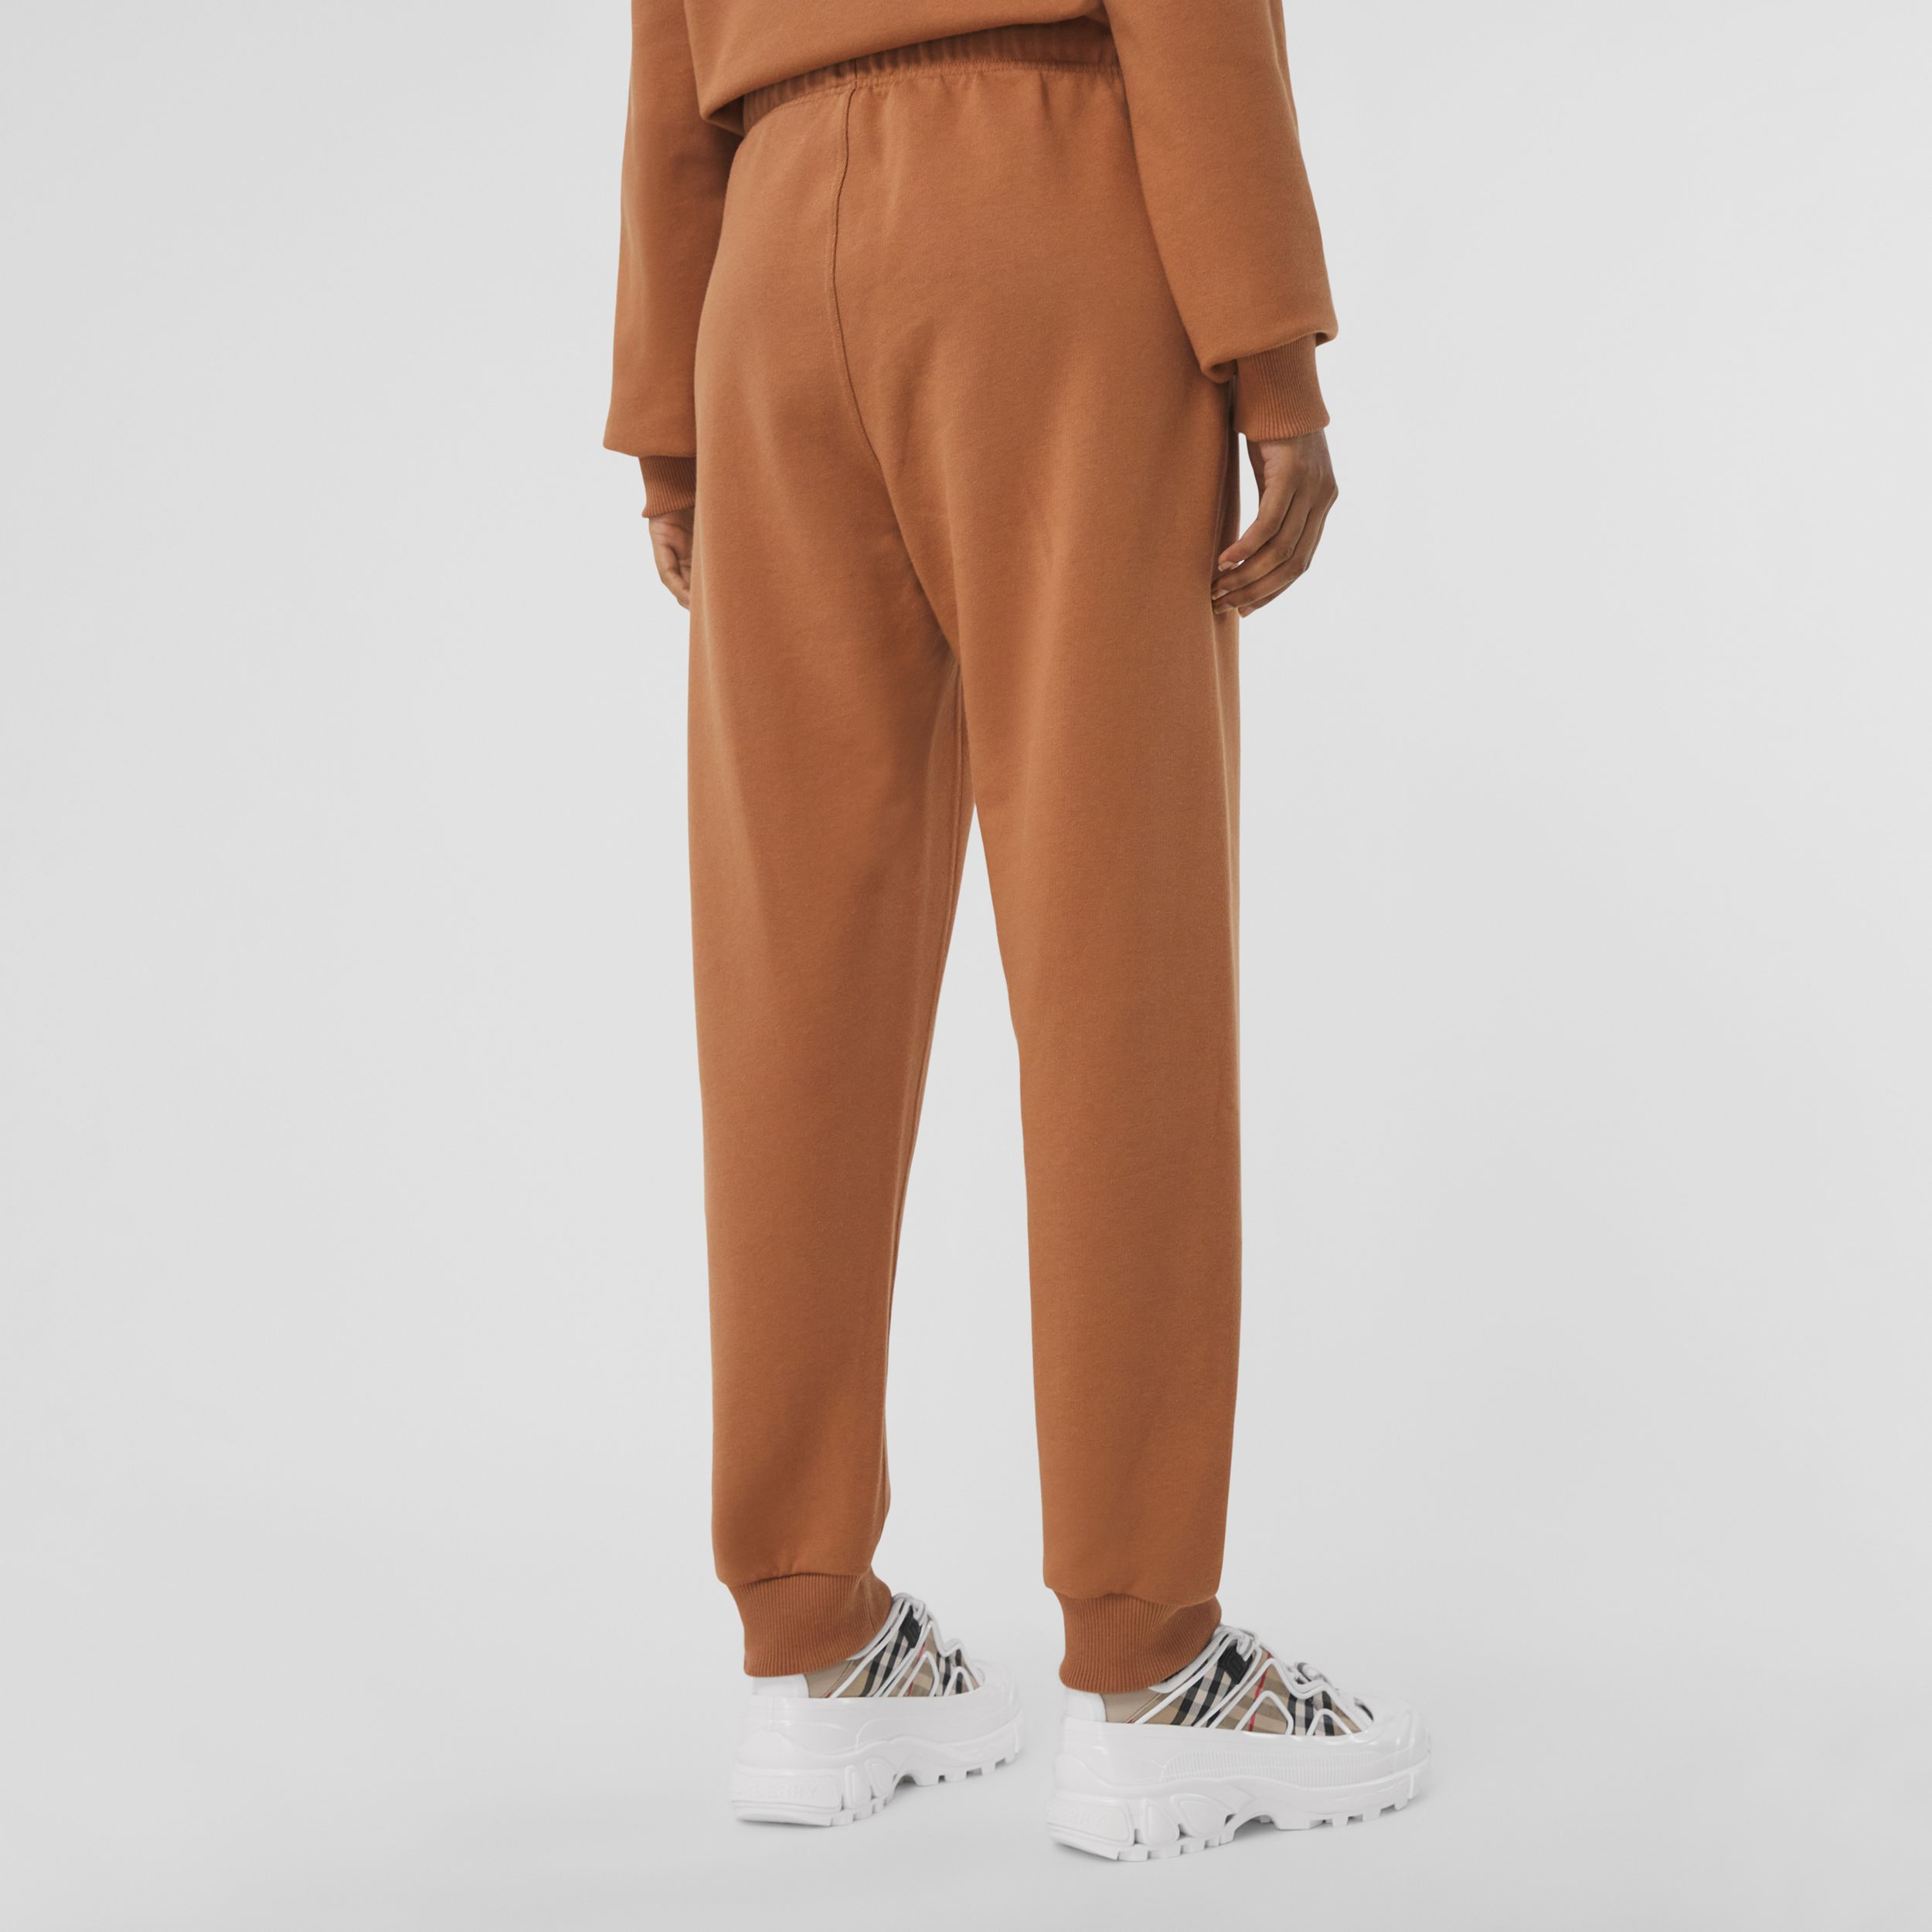 Horseferry Print Cotton Jogging Pants in Camel - Women | Burberry - 3